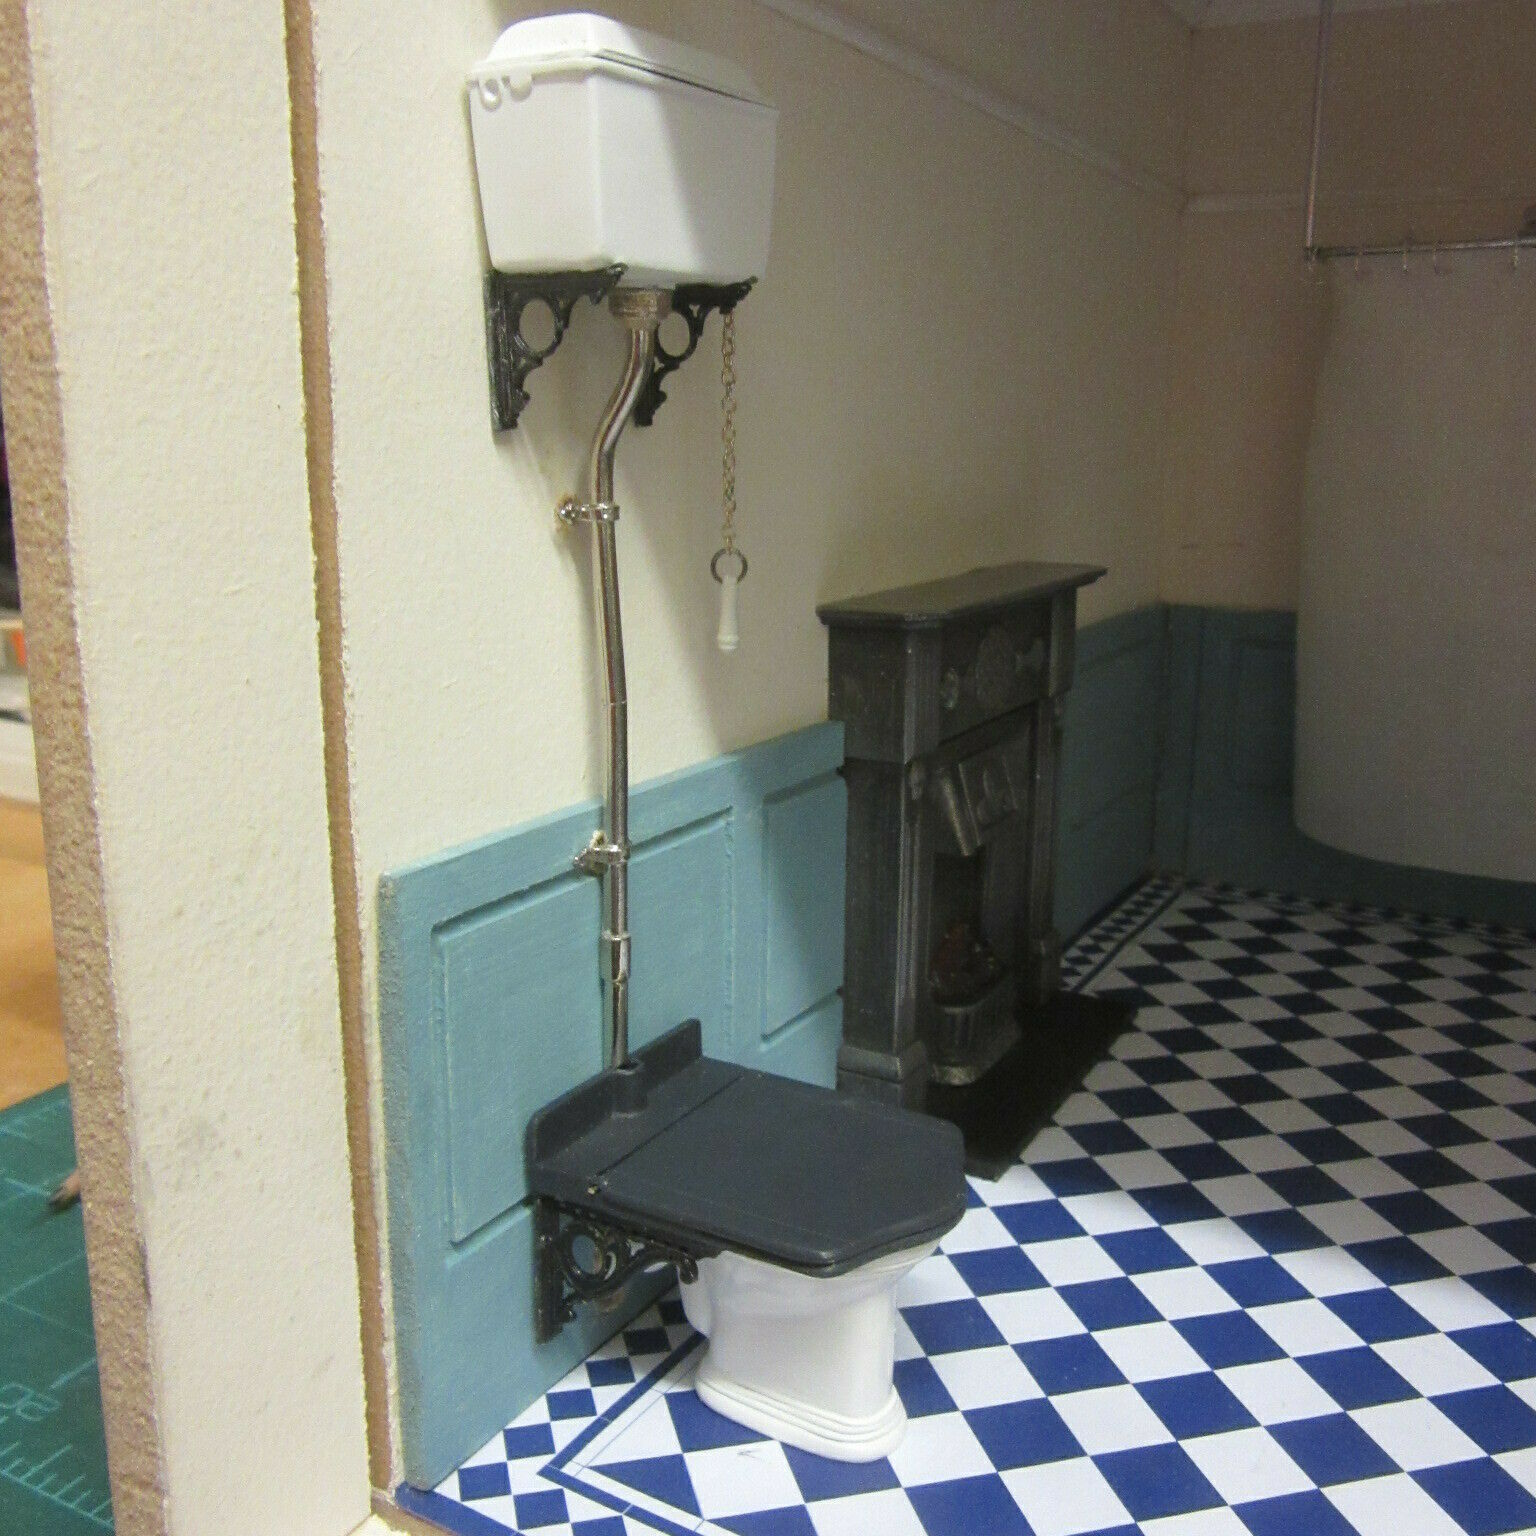 Dolls House Victorian Toilet Ready made Lili Anne Bathroom collection